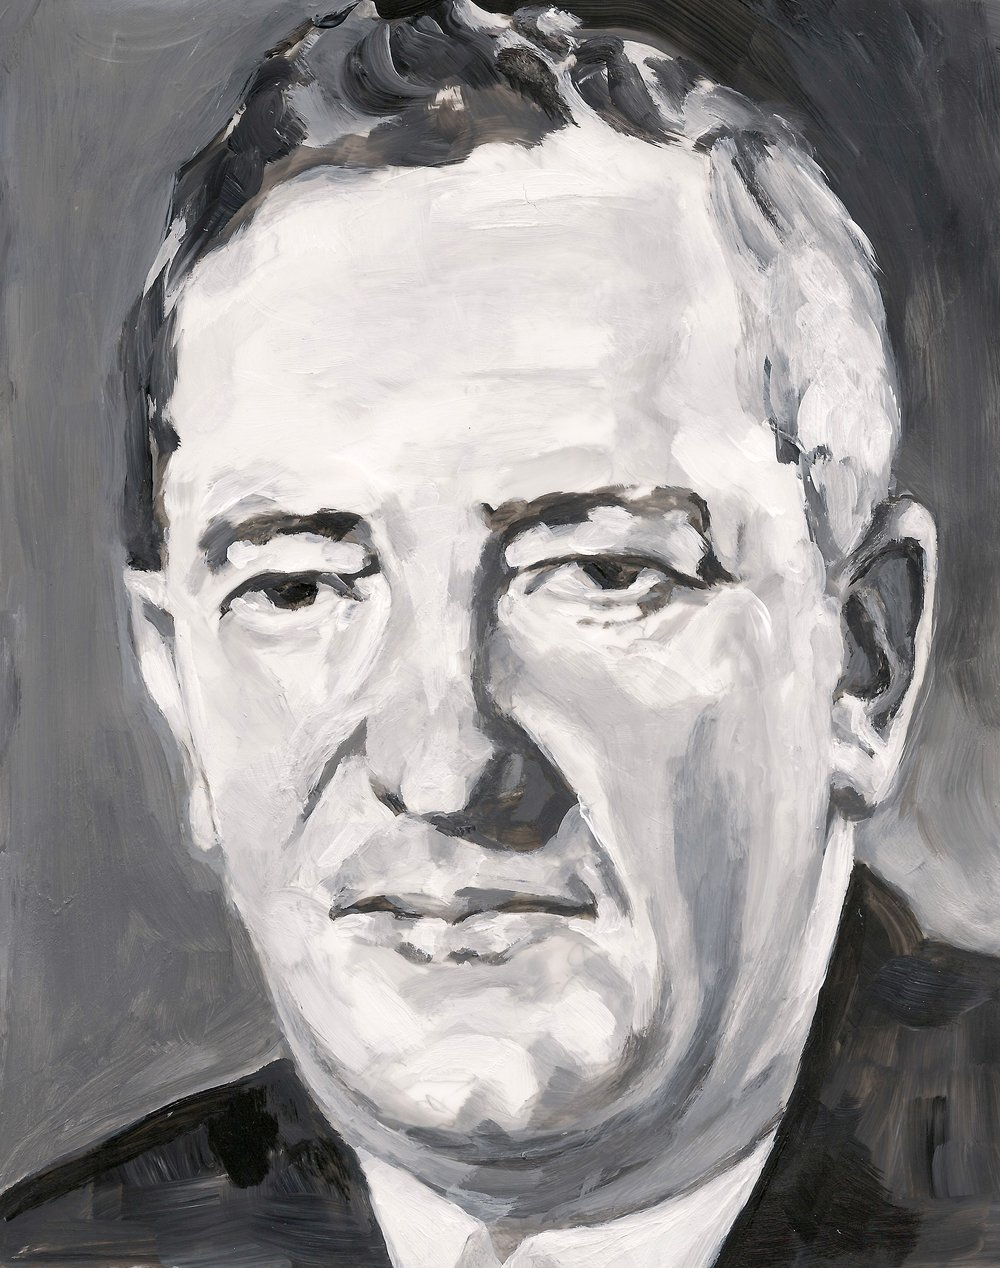 (Detail) 48 Portraits: Sir William Stephenson, Acrylic on Mylar on Wood Panel, 2016.